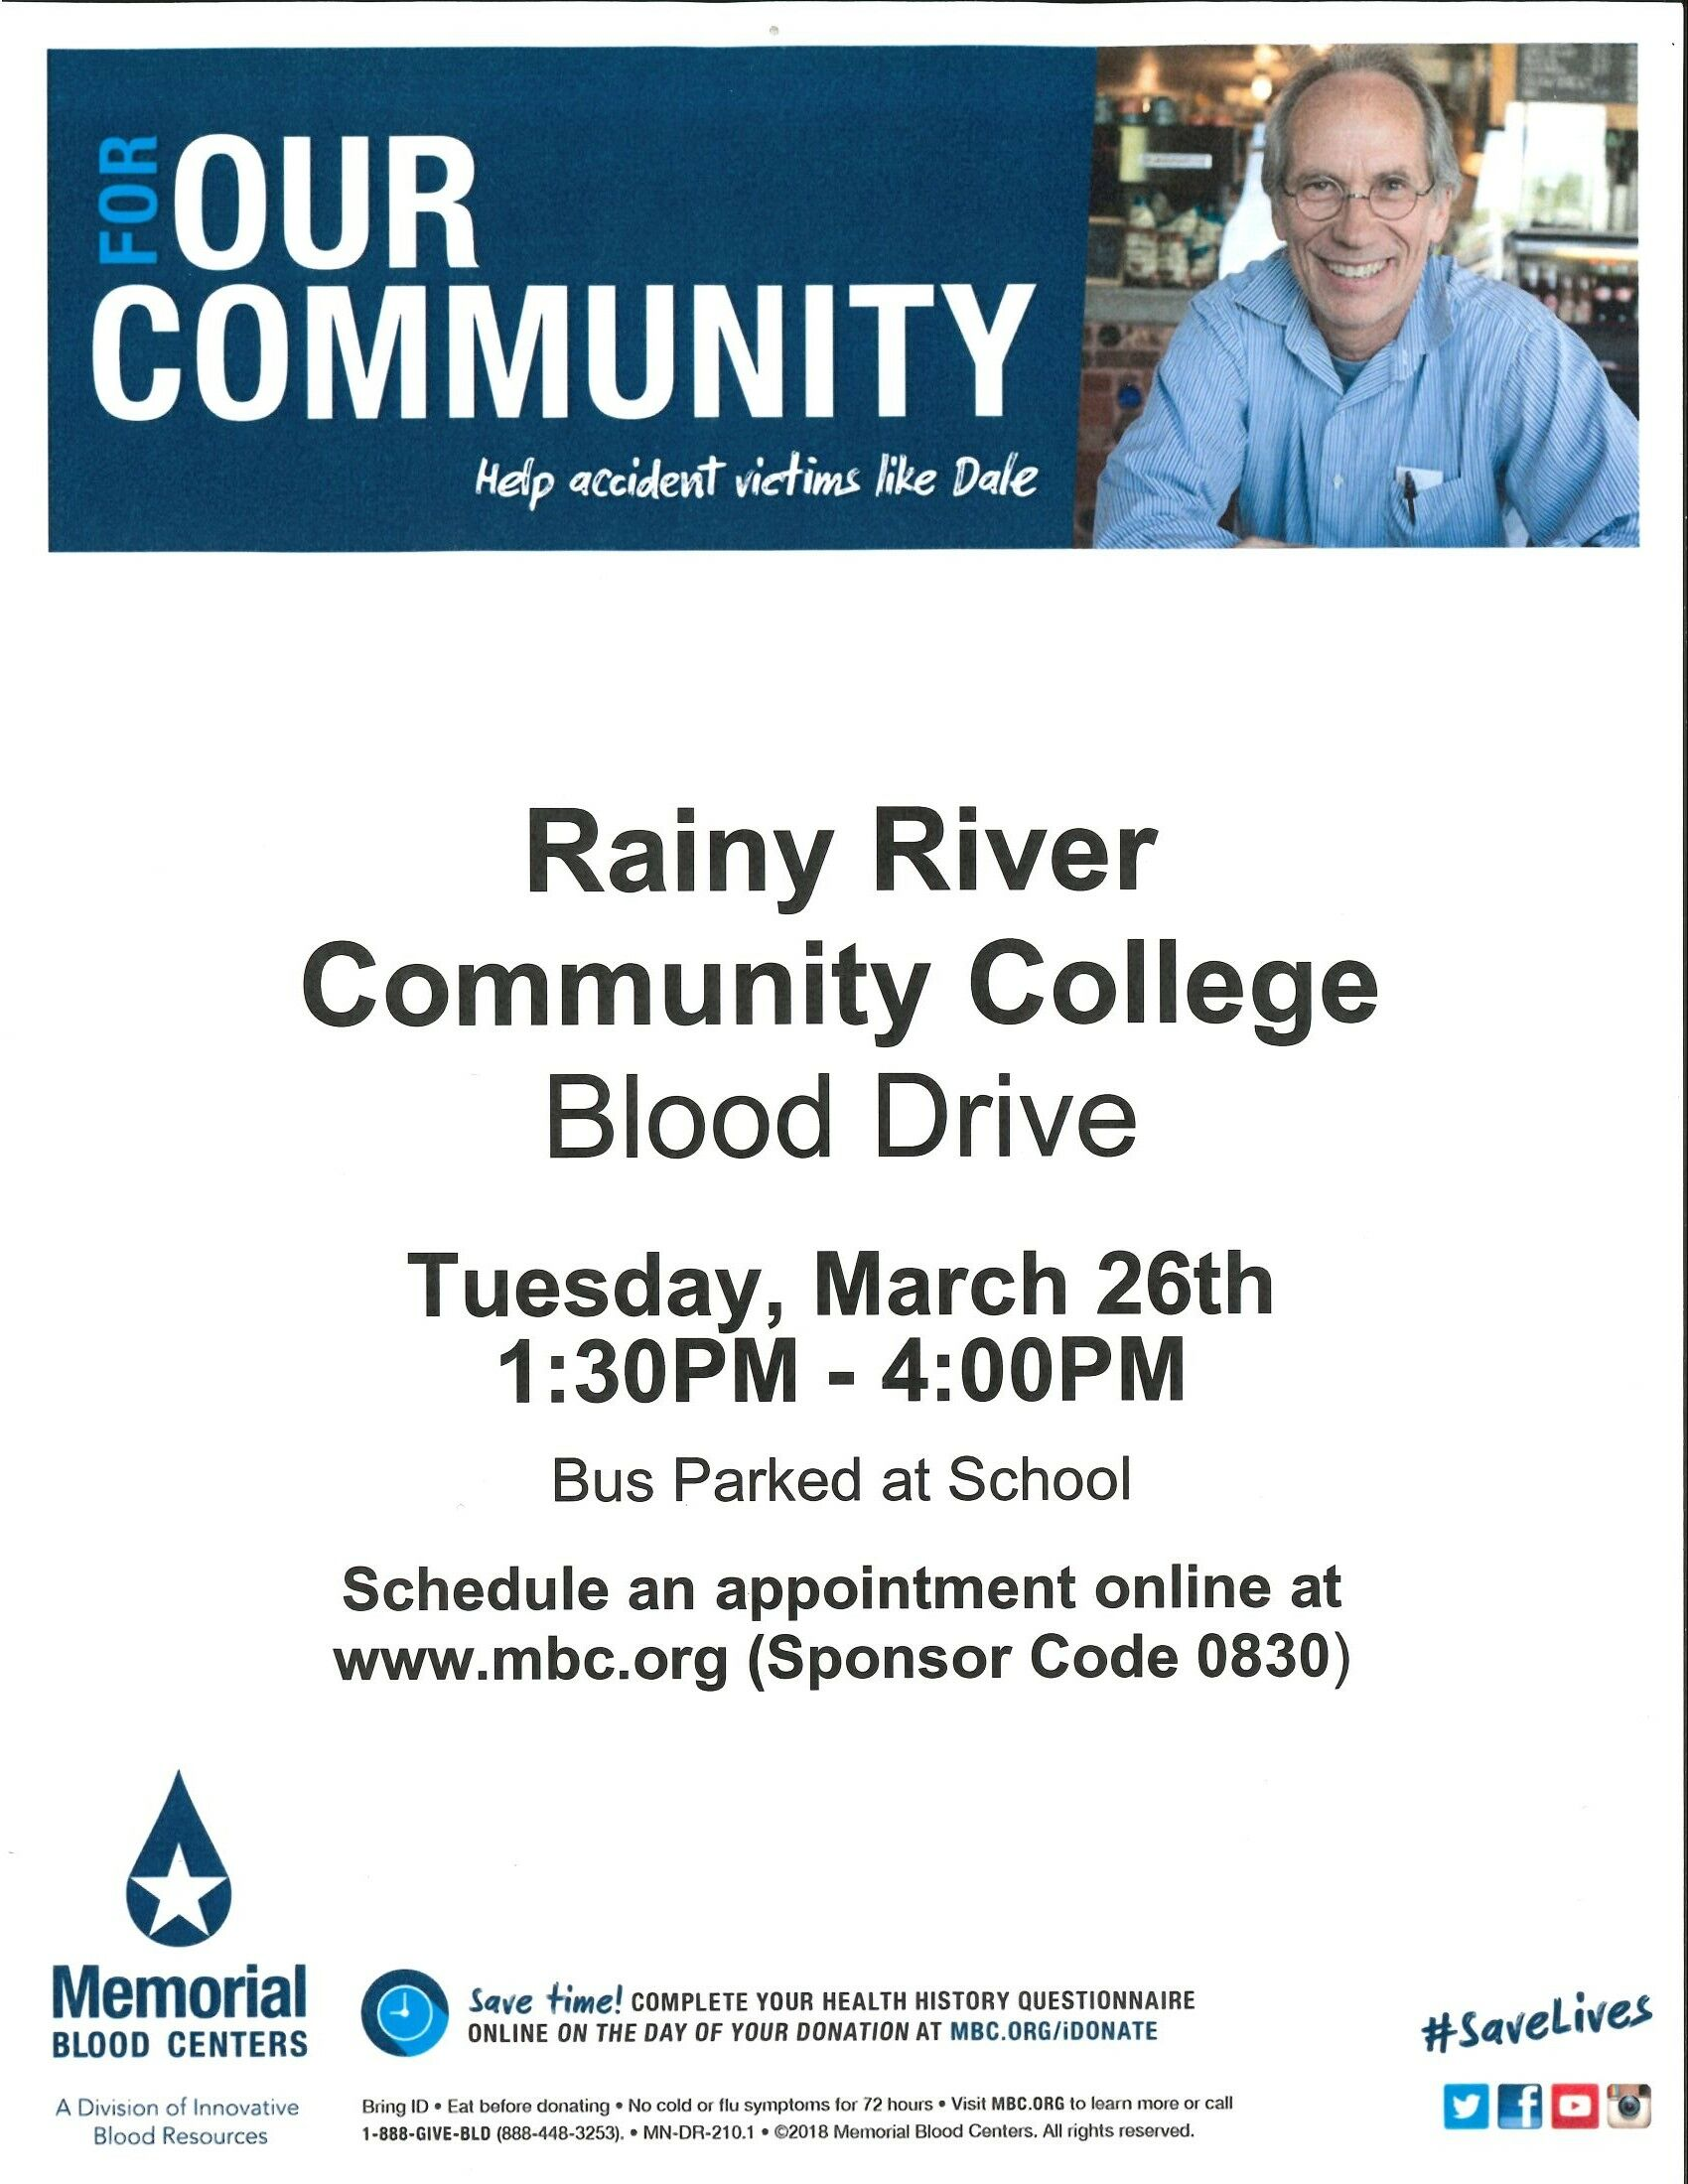 Rainy River Community College Blood Drive